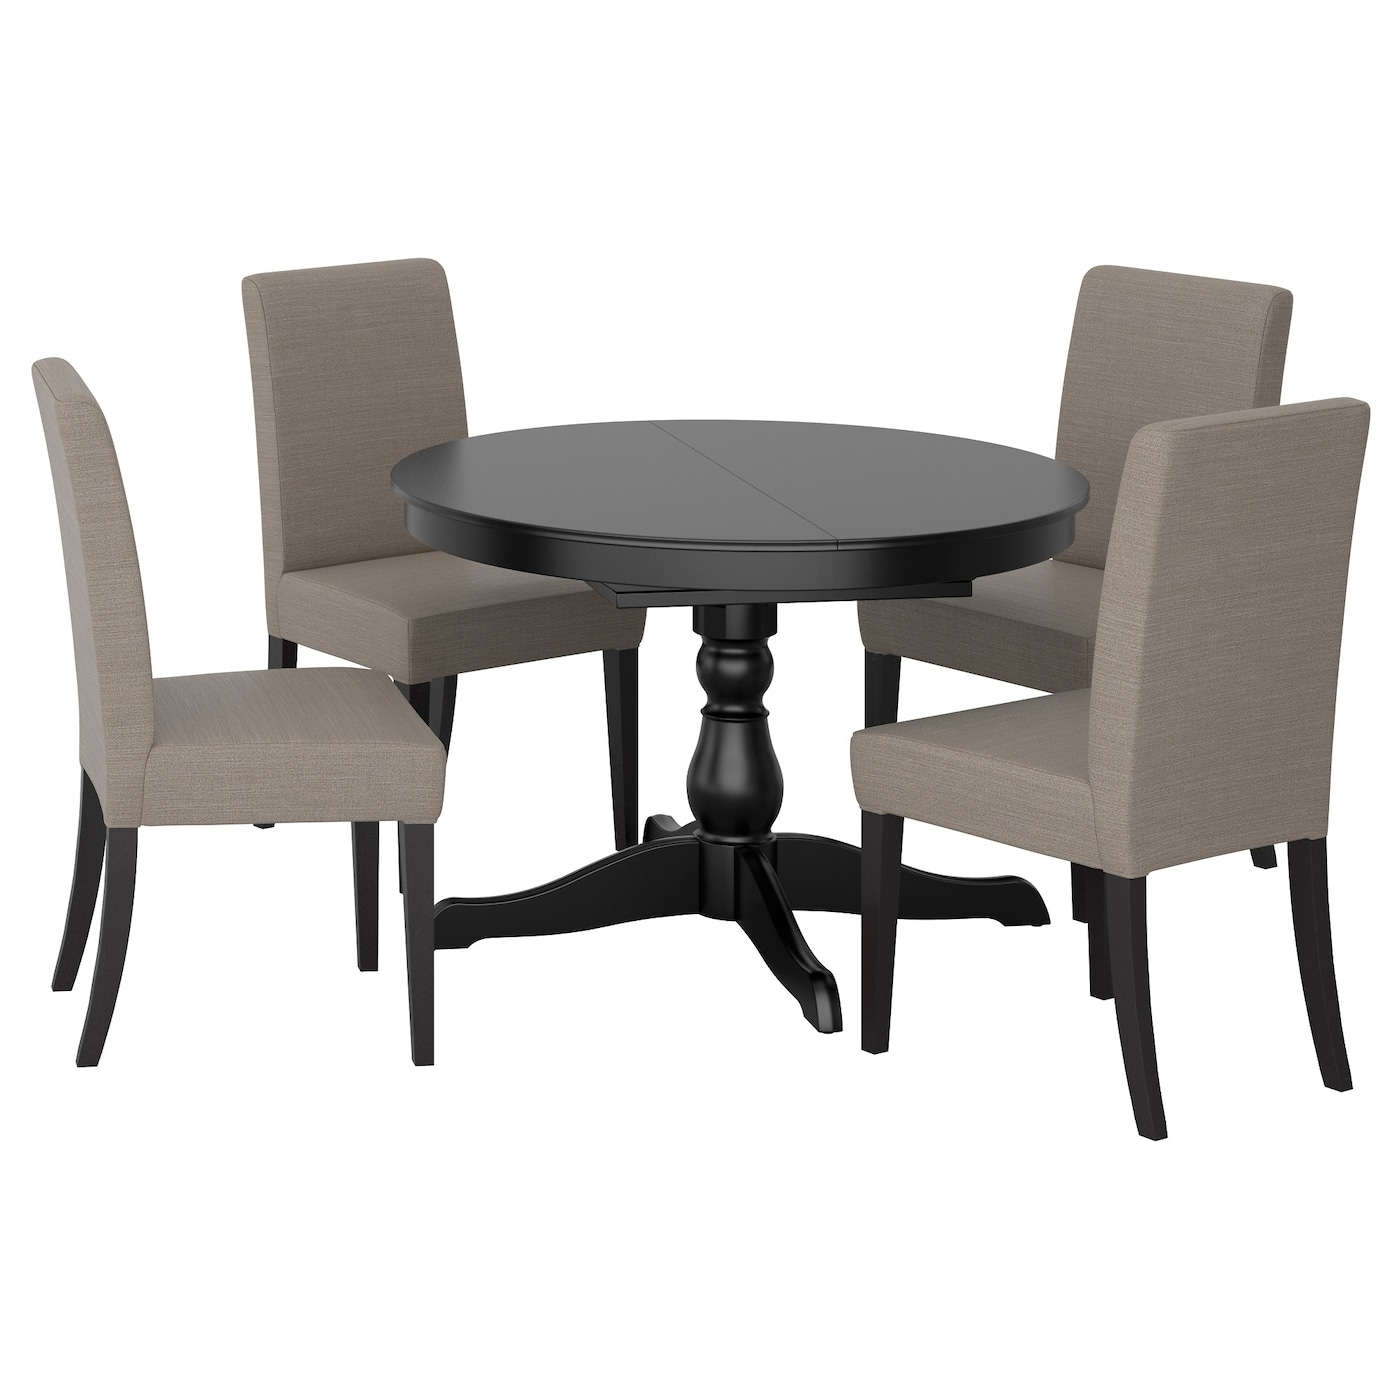 Ingatorp henriksdal table and 4 chairs black nolhaga grey for Base de table ikea